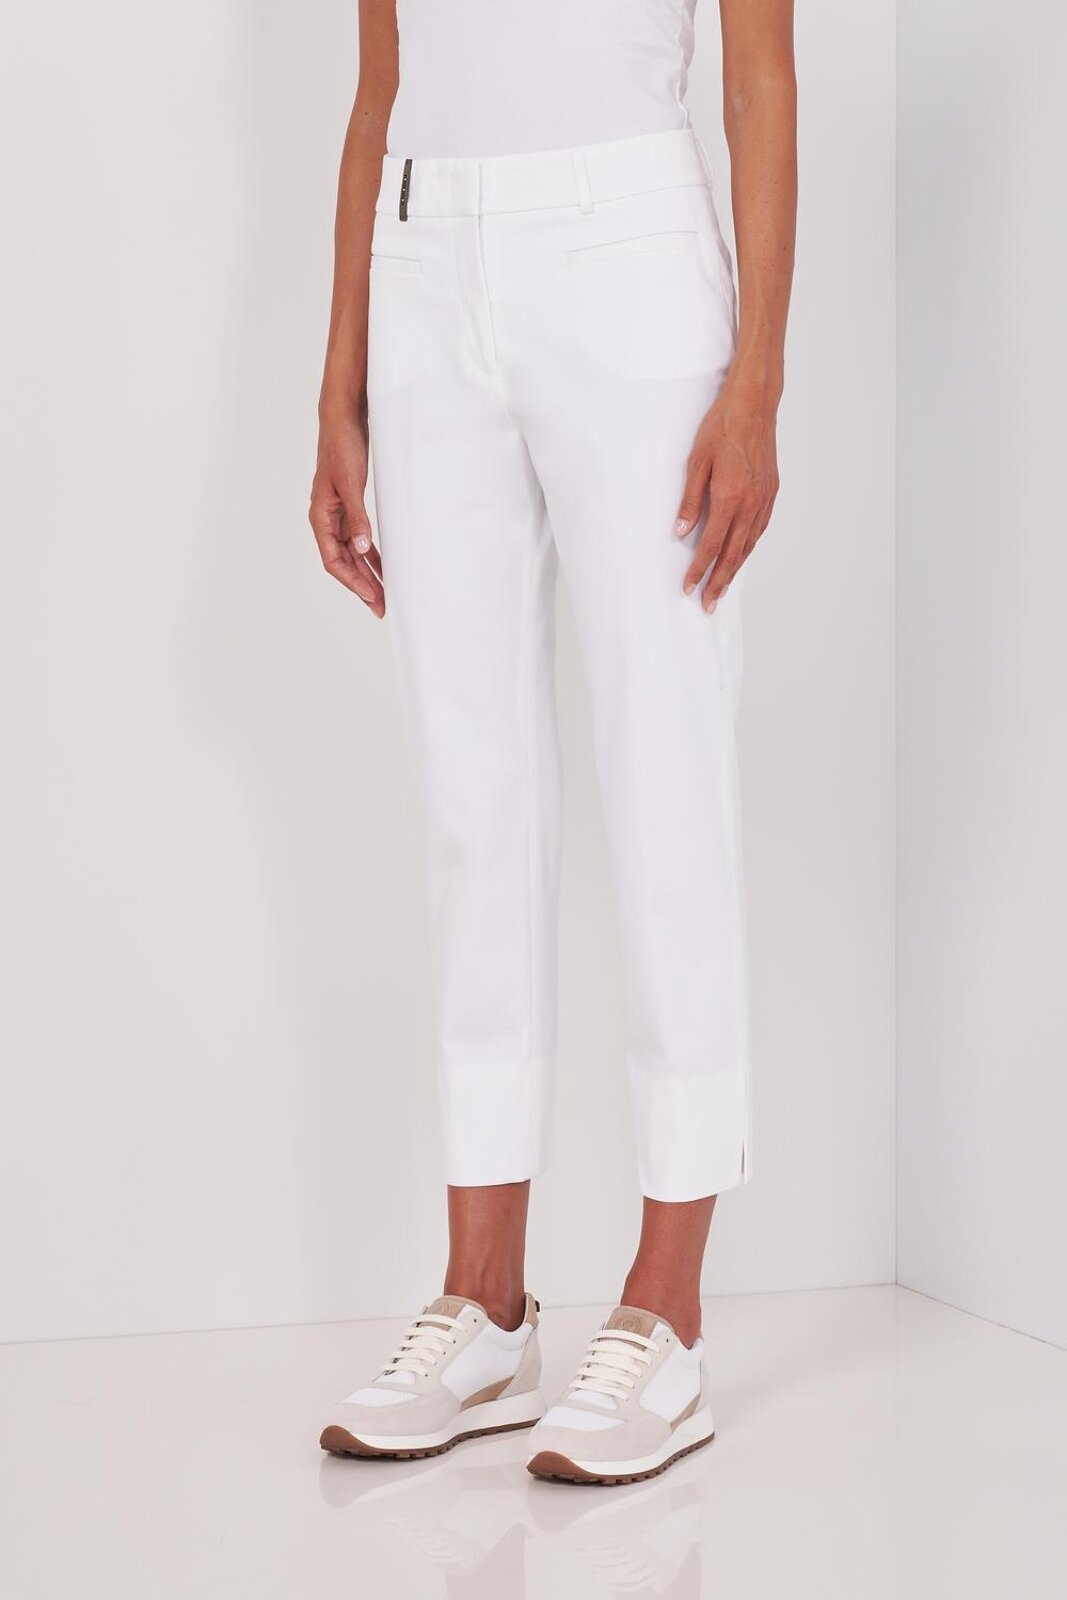 High Waisted Slightly Stretch Pure Cotton Pants With Ankle Cuffs With Metallic Detail. Hidden Zip Closure, Slim Fit. - Peserico